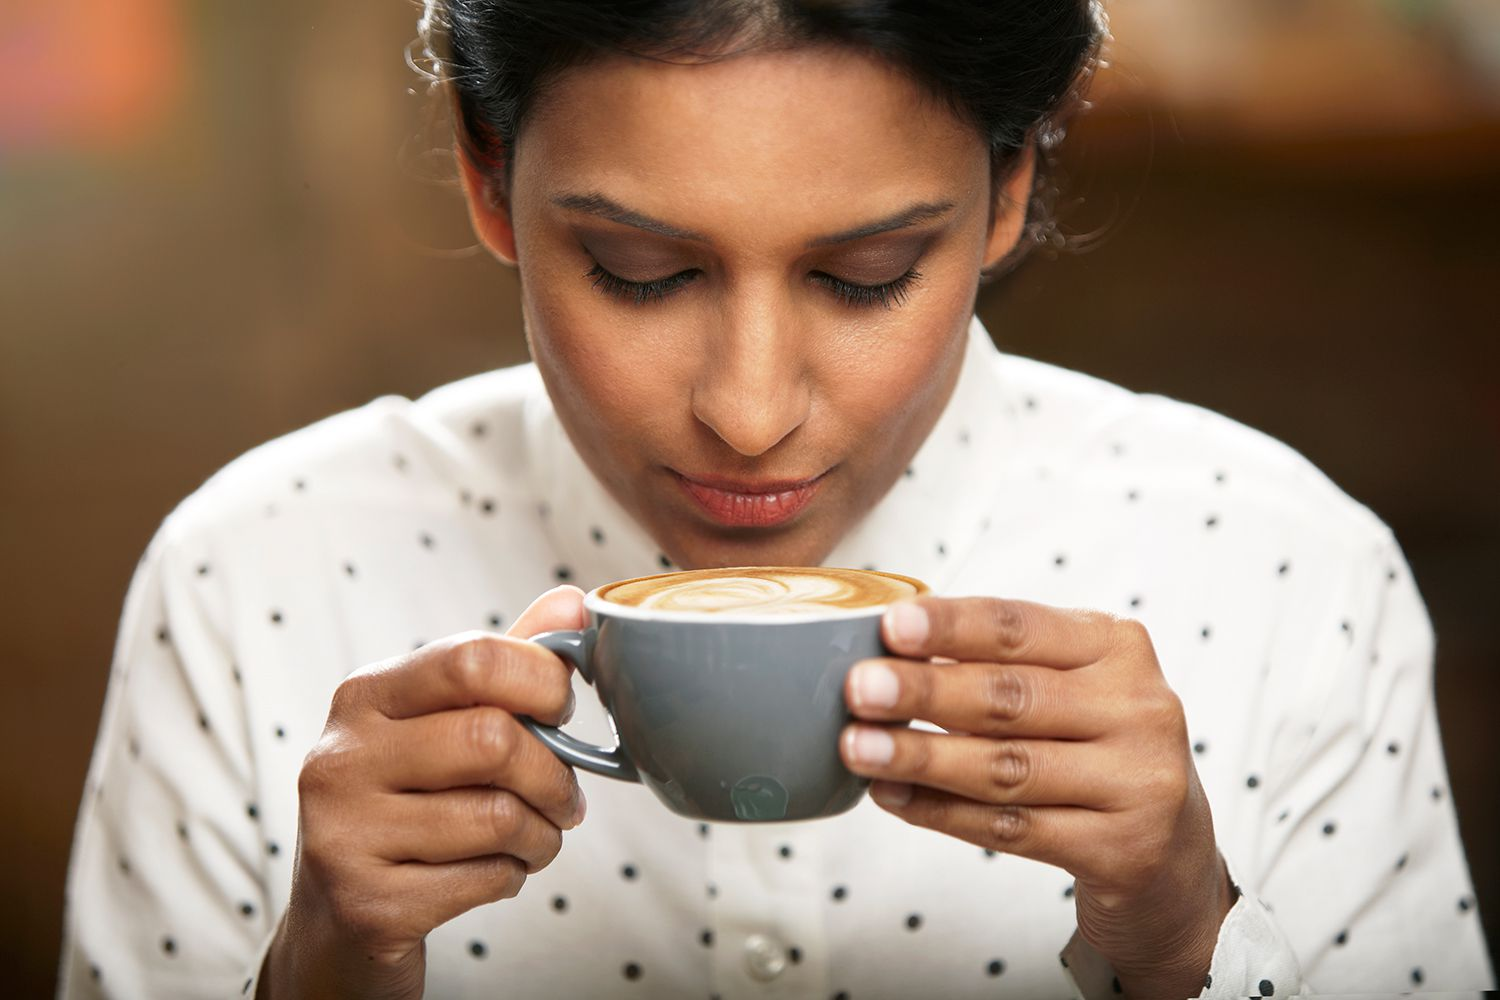 Woman about to drink a cup of coffee.